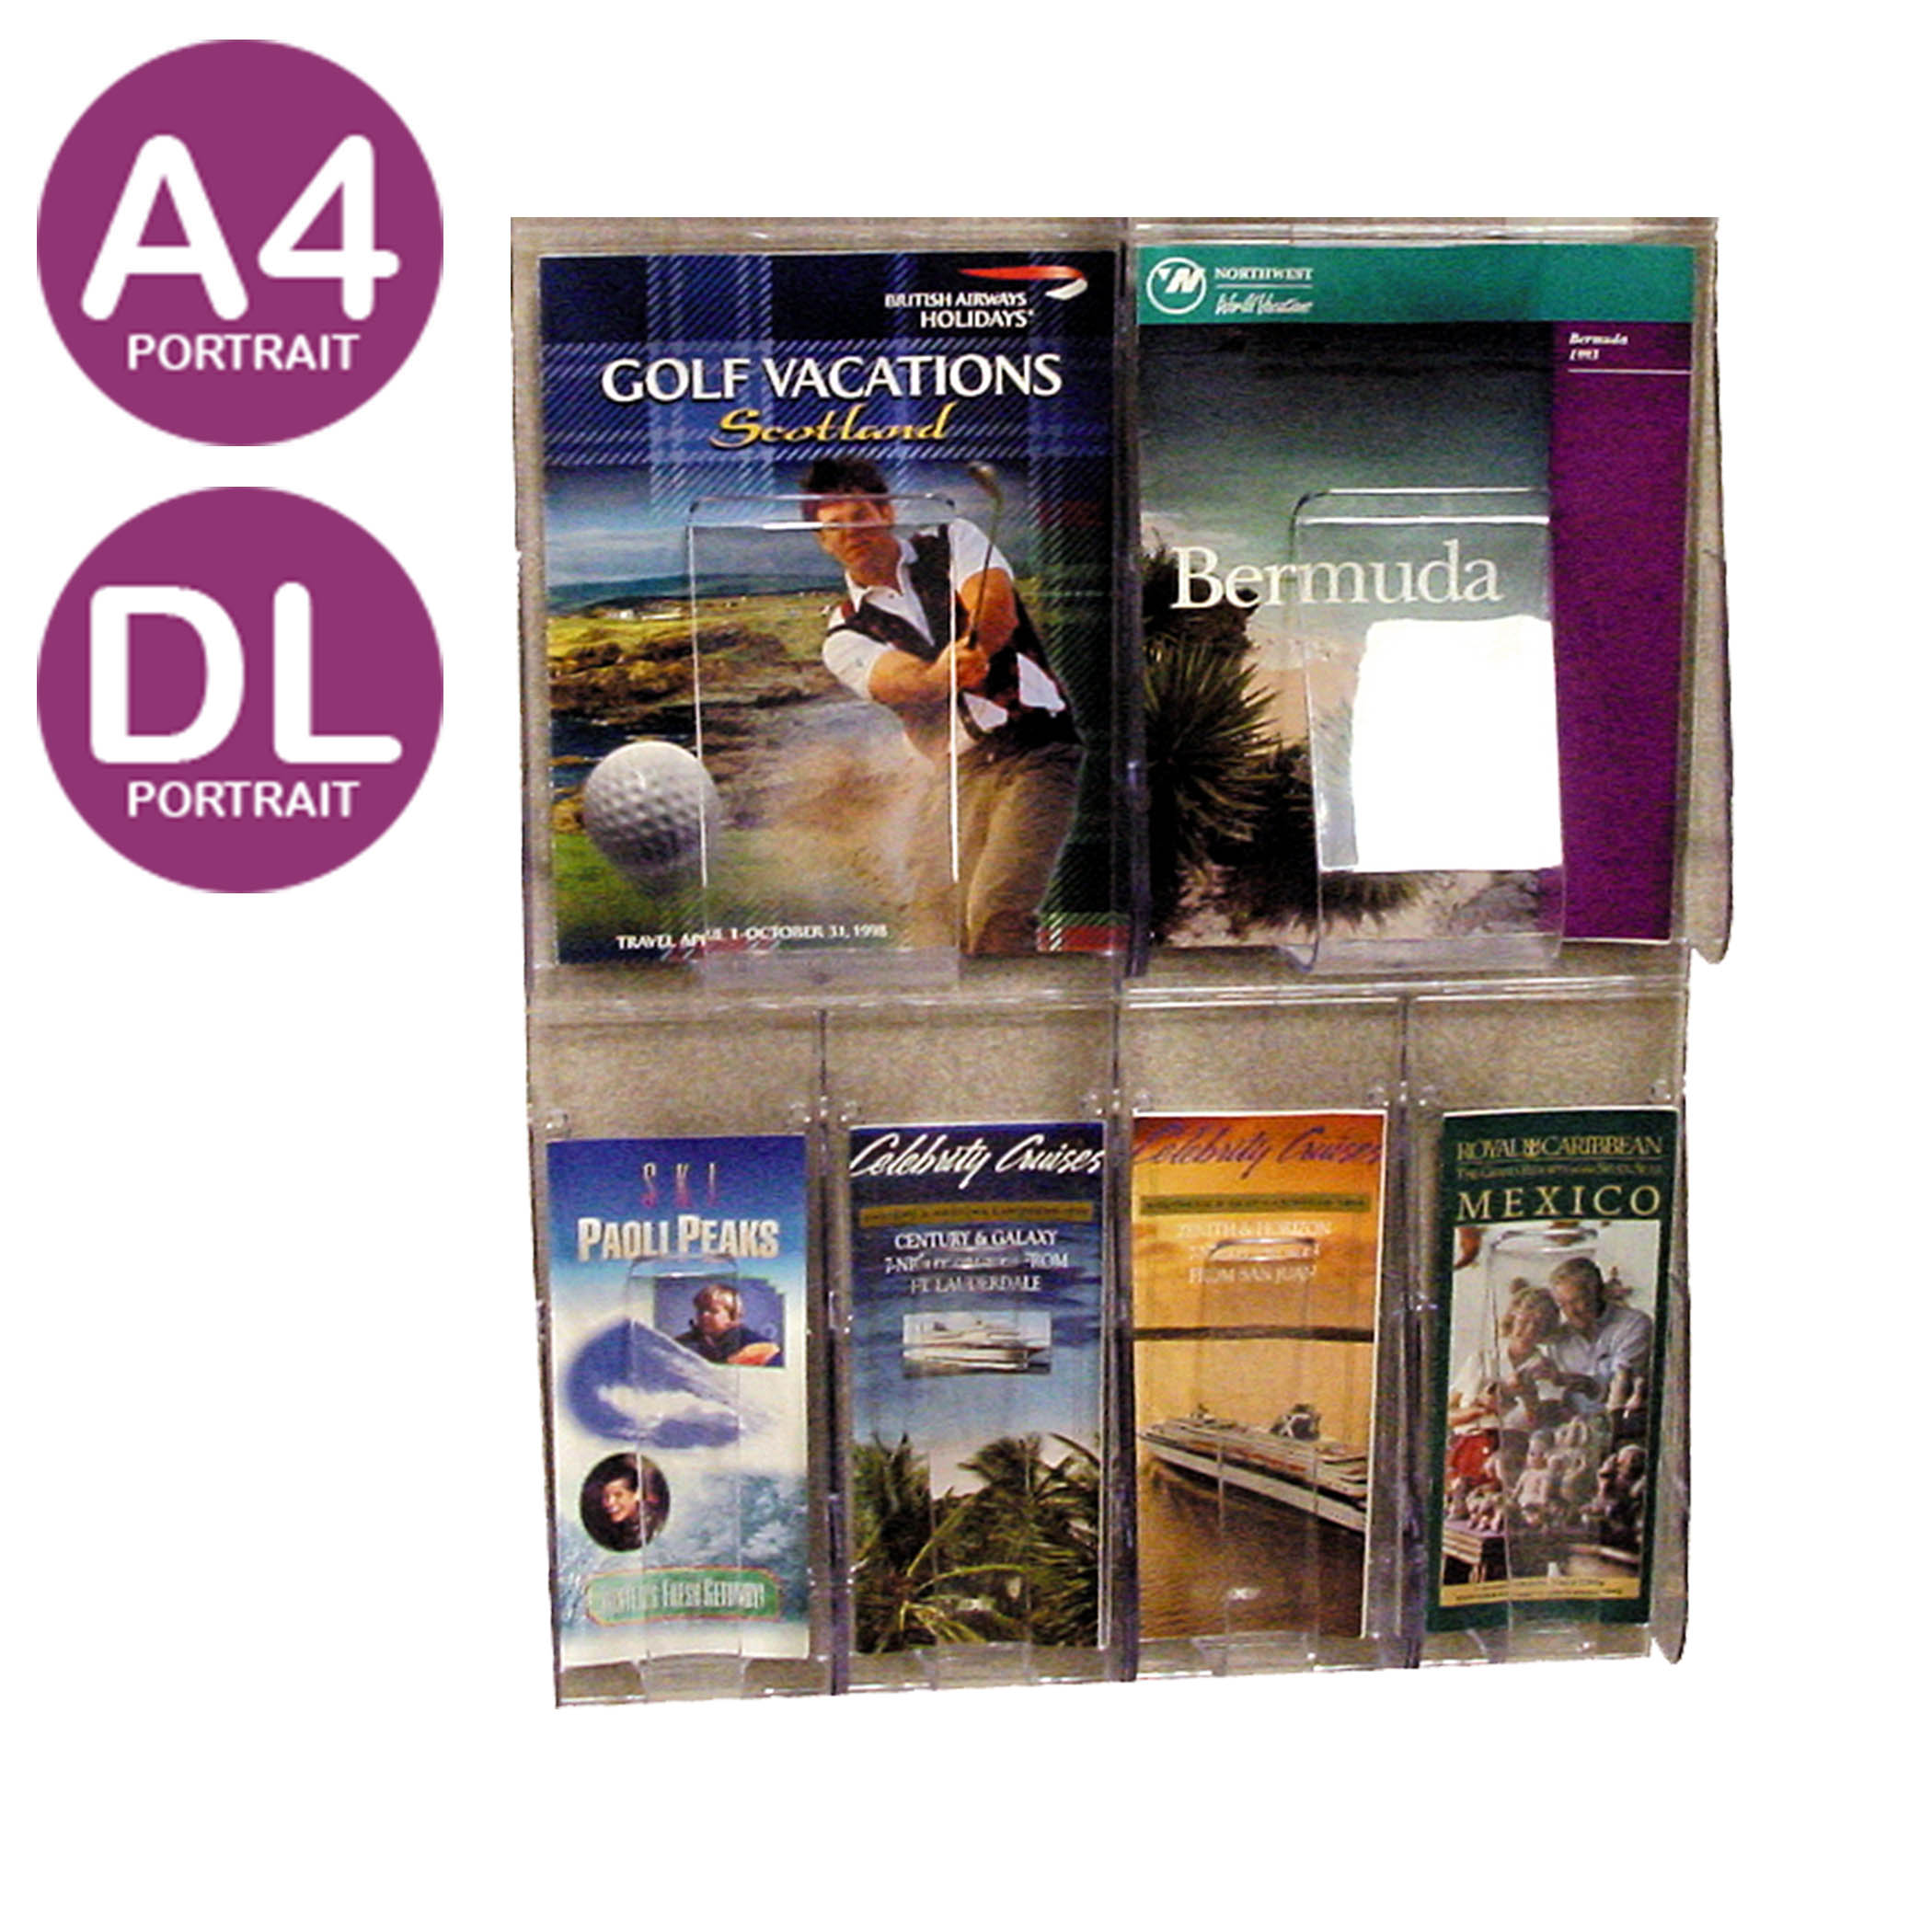 wooden wall brochure holders stands display mounted mount x rack with regard dimensions furniture to literature decor